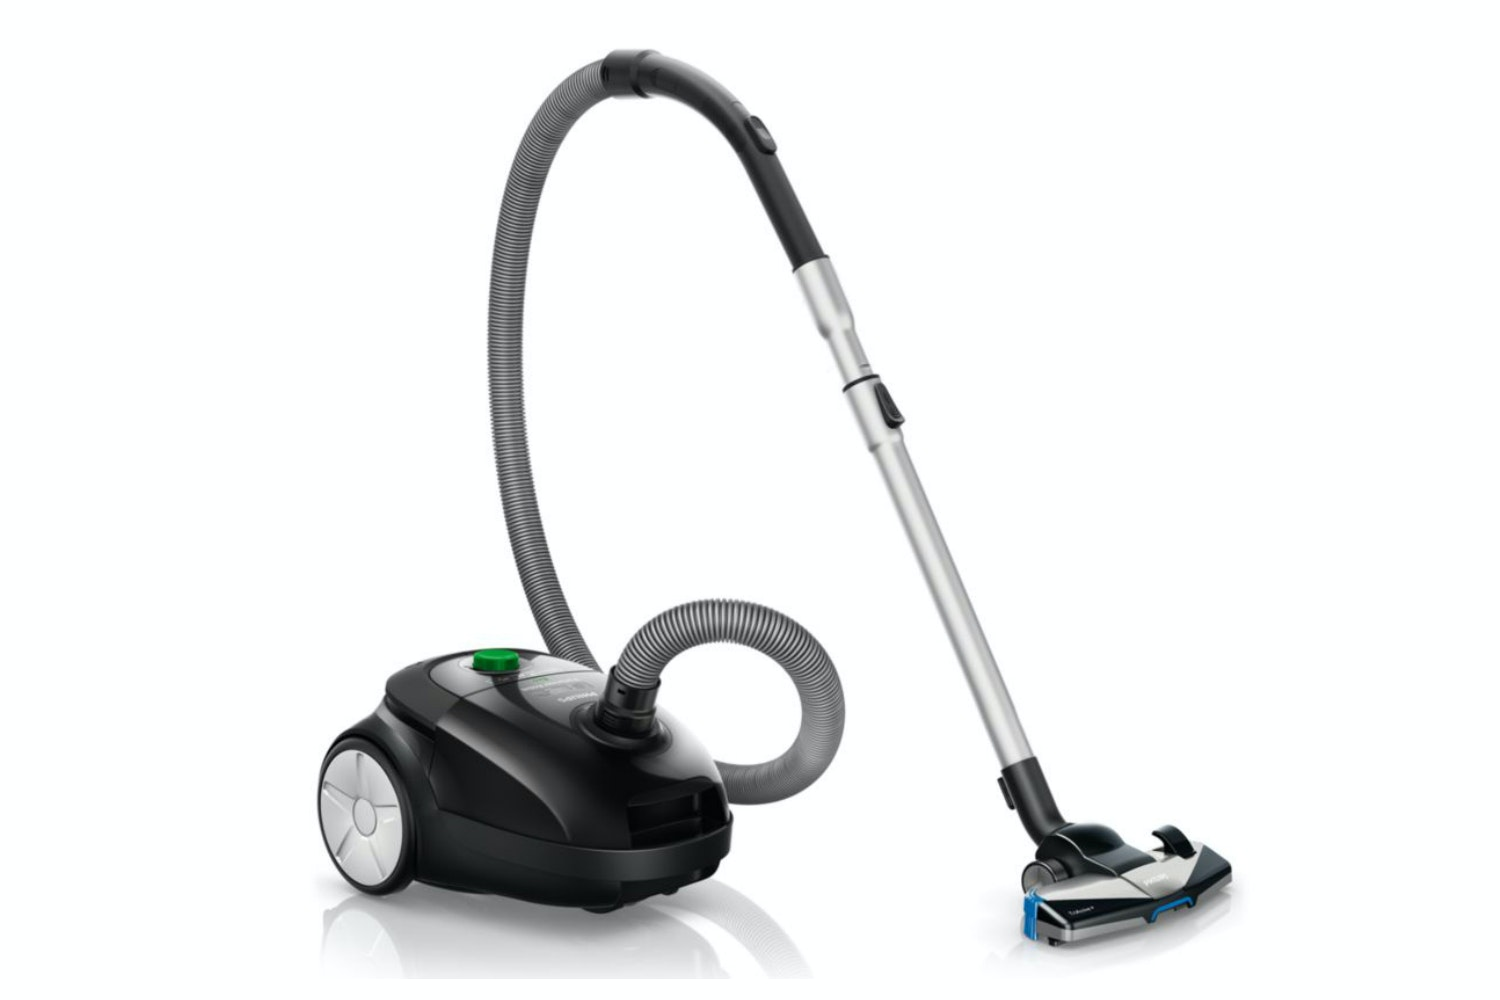 Philips Performer Active Vacuum Cleaner full